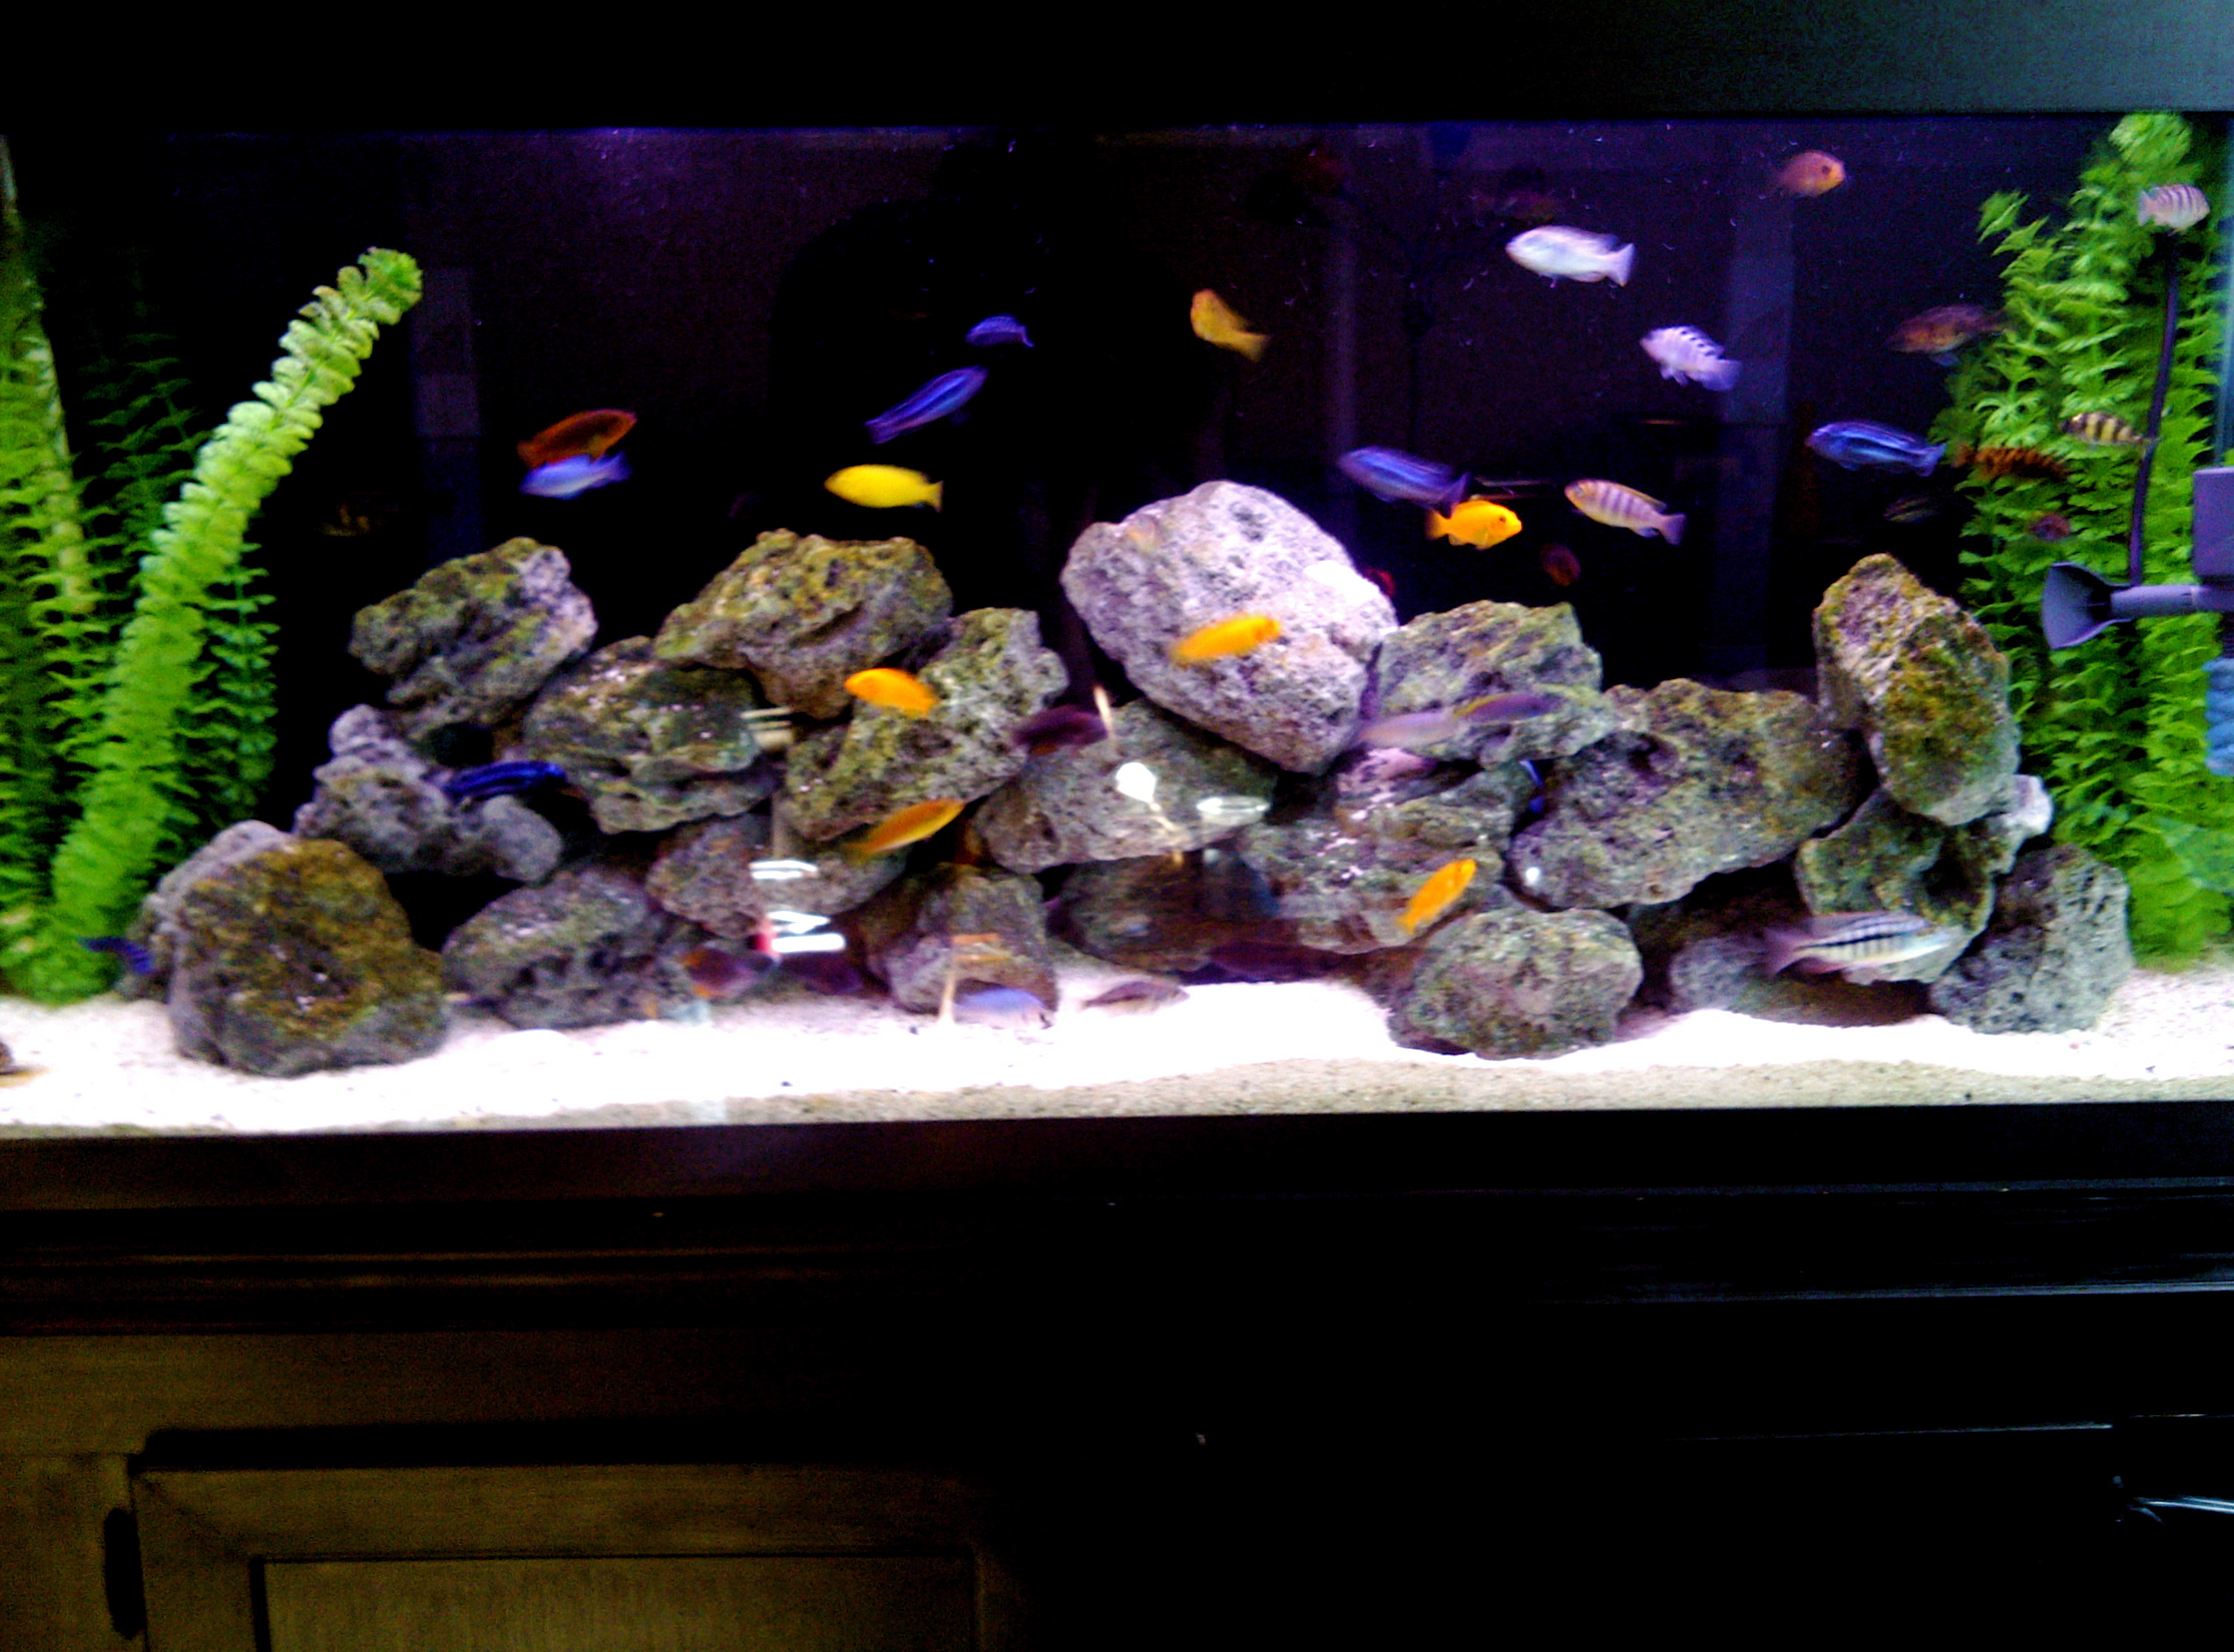 401300 additionally 55 gallon african cichlids 2 besides Kensington Sw7 Star Wars Episode Vii Preparing For Physical Production as well Genius Best Animals Mixed With Sharks together with Moana First Look And Casting Announcement. on oscar fish bit me